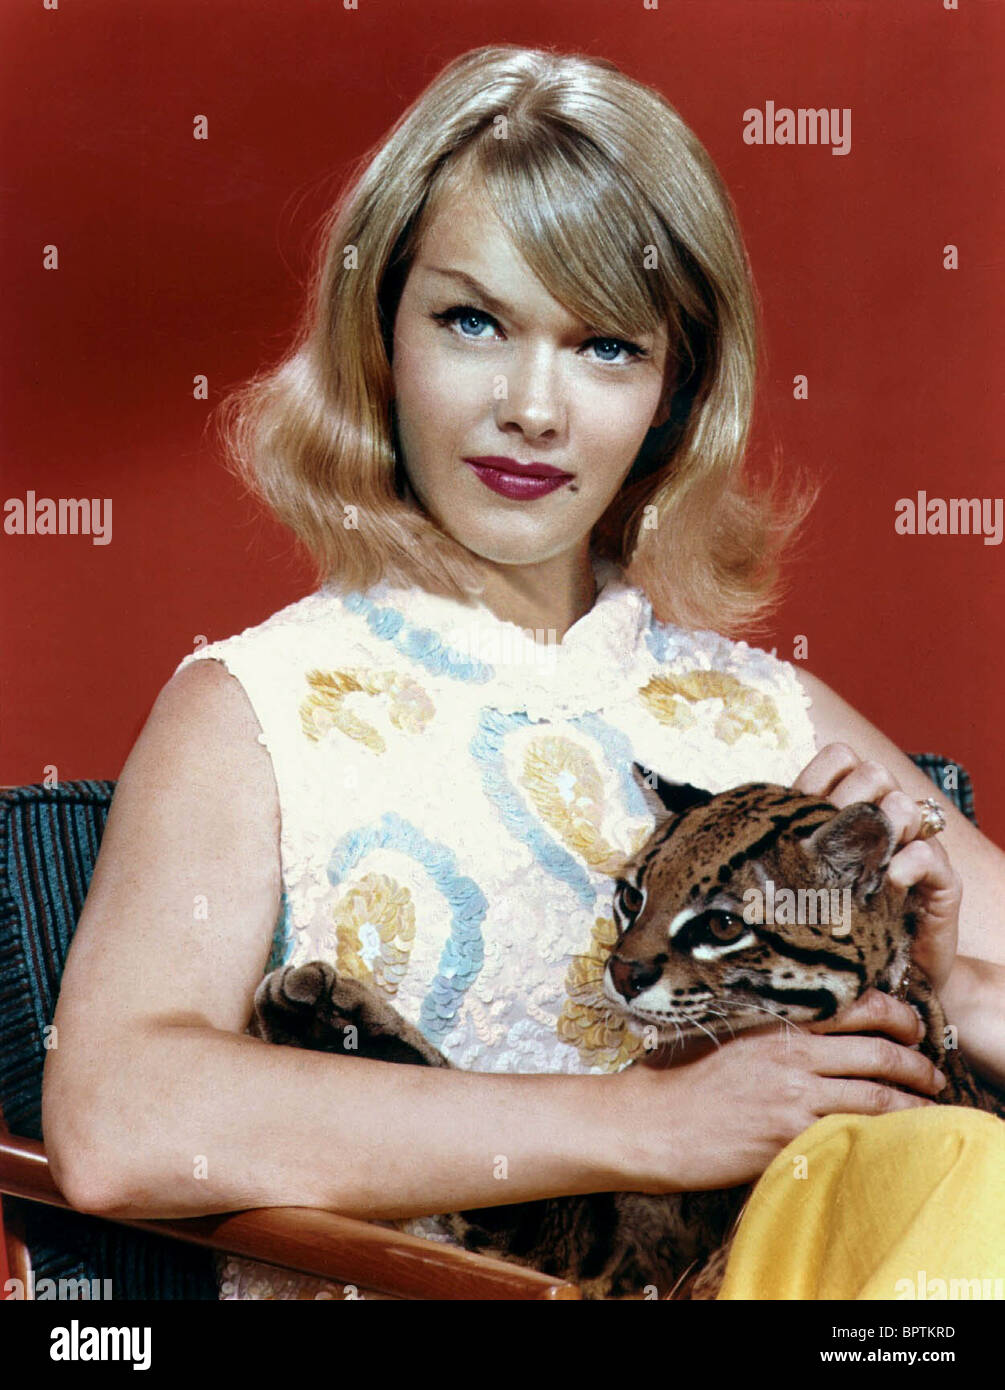 ANNE FRANCIS ACTRESS (1956) - Stock Image